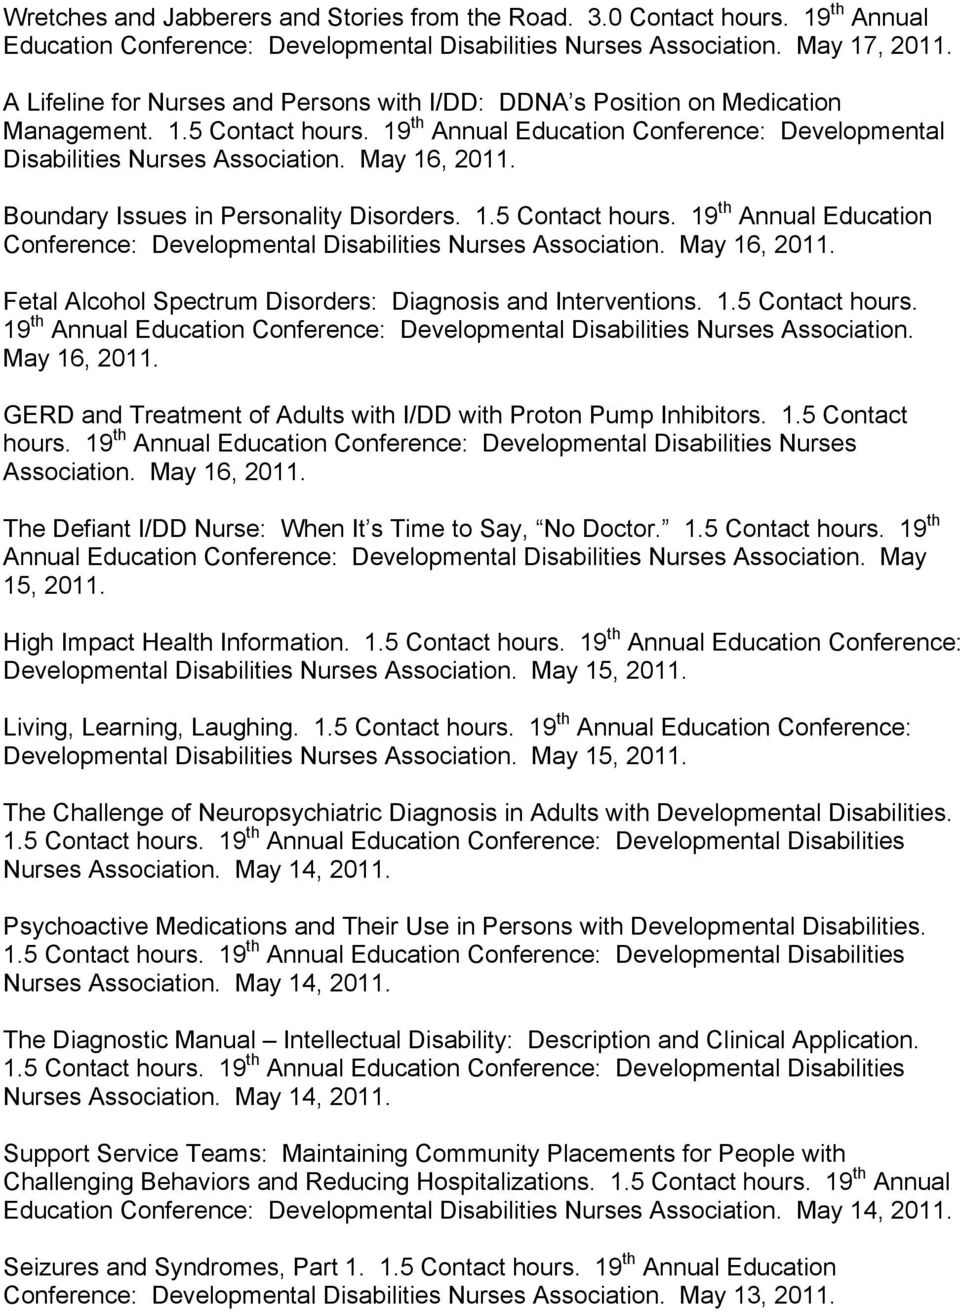 May 16, 2011. Boundary Issues in Personality Disorders. 1.5 Contact hours. 19 th Annual Education Conference: Developmental Disabilities Nurses Association. May 16, 2011.